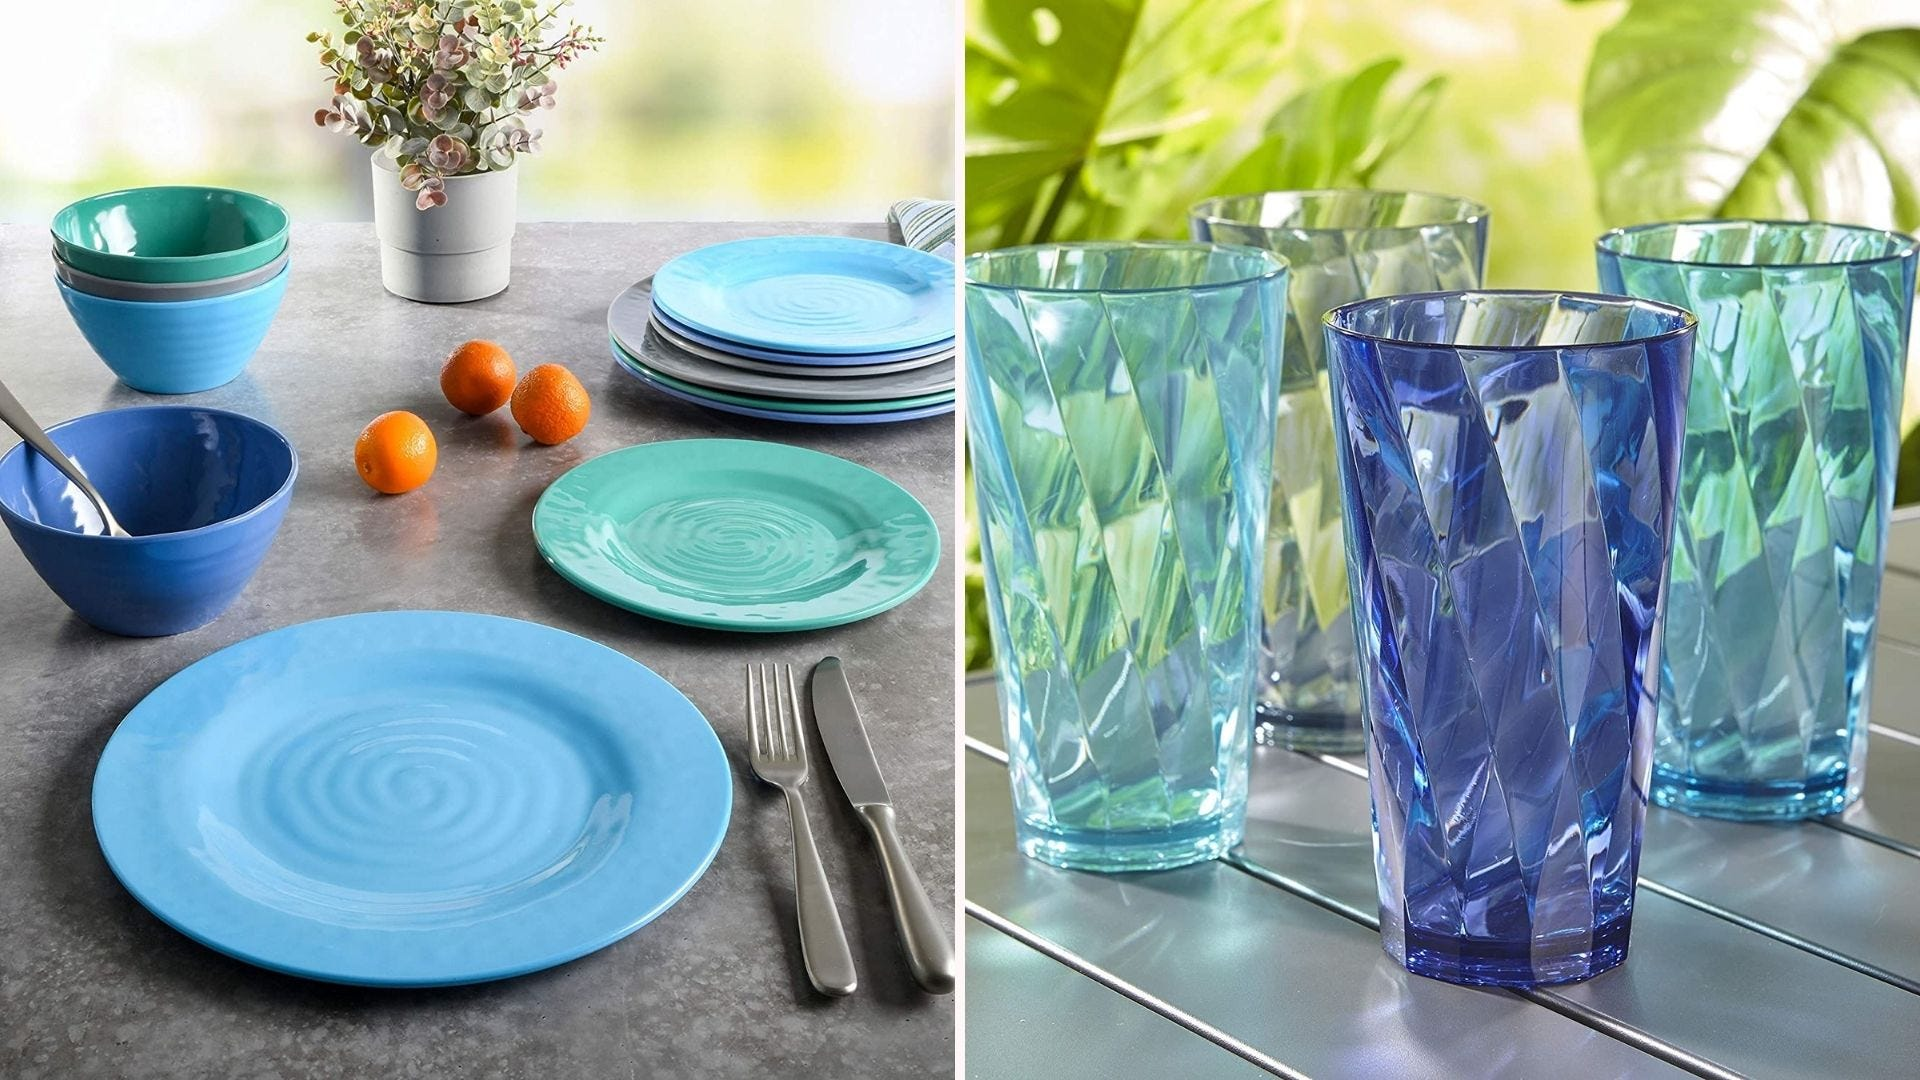 A set of blue and green dishes and bowls; a set of blue and teal glasses